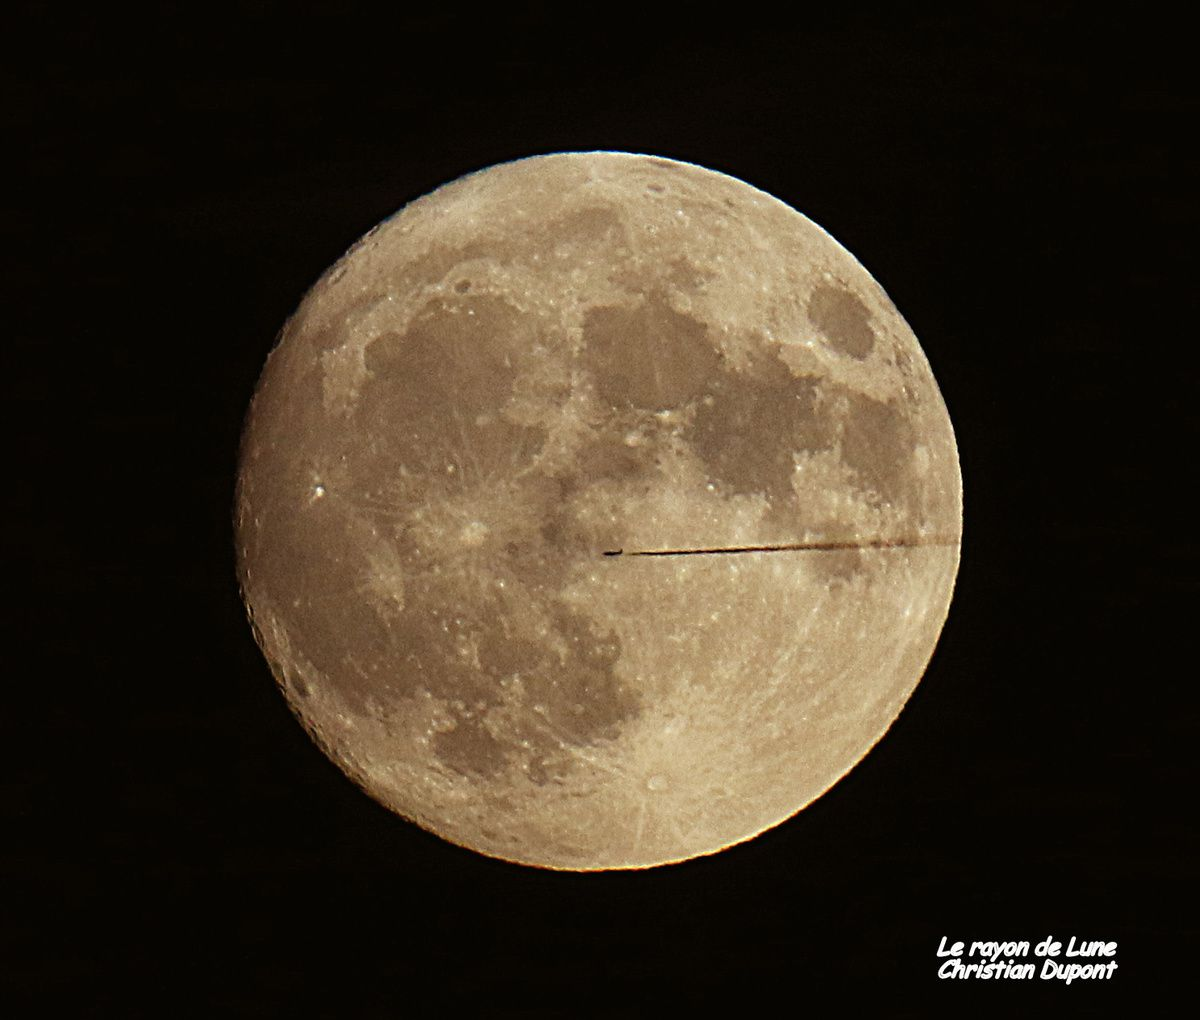 Le rayon de Lune, photo de Christian D.